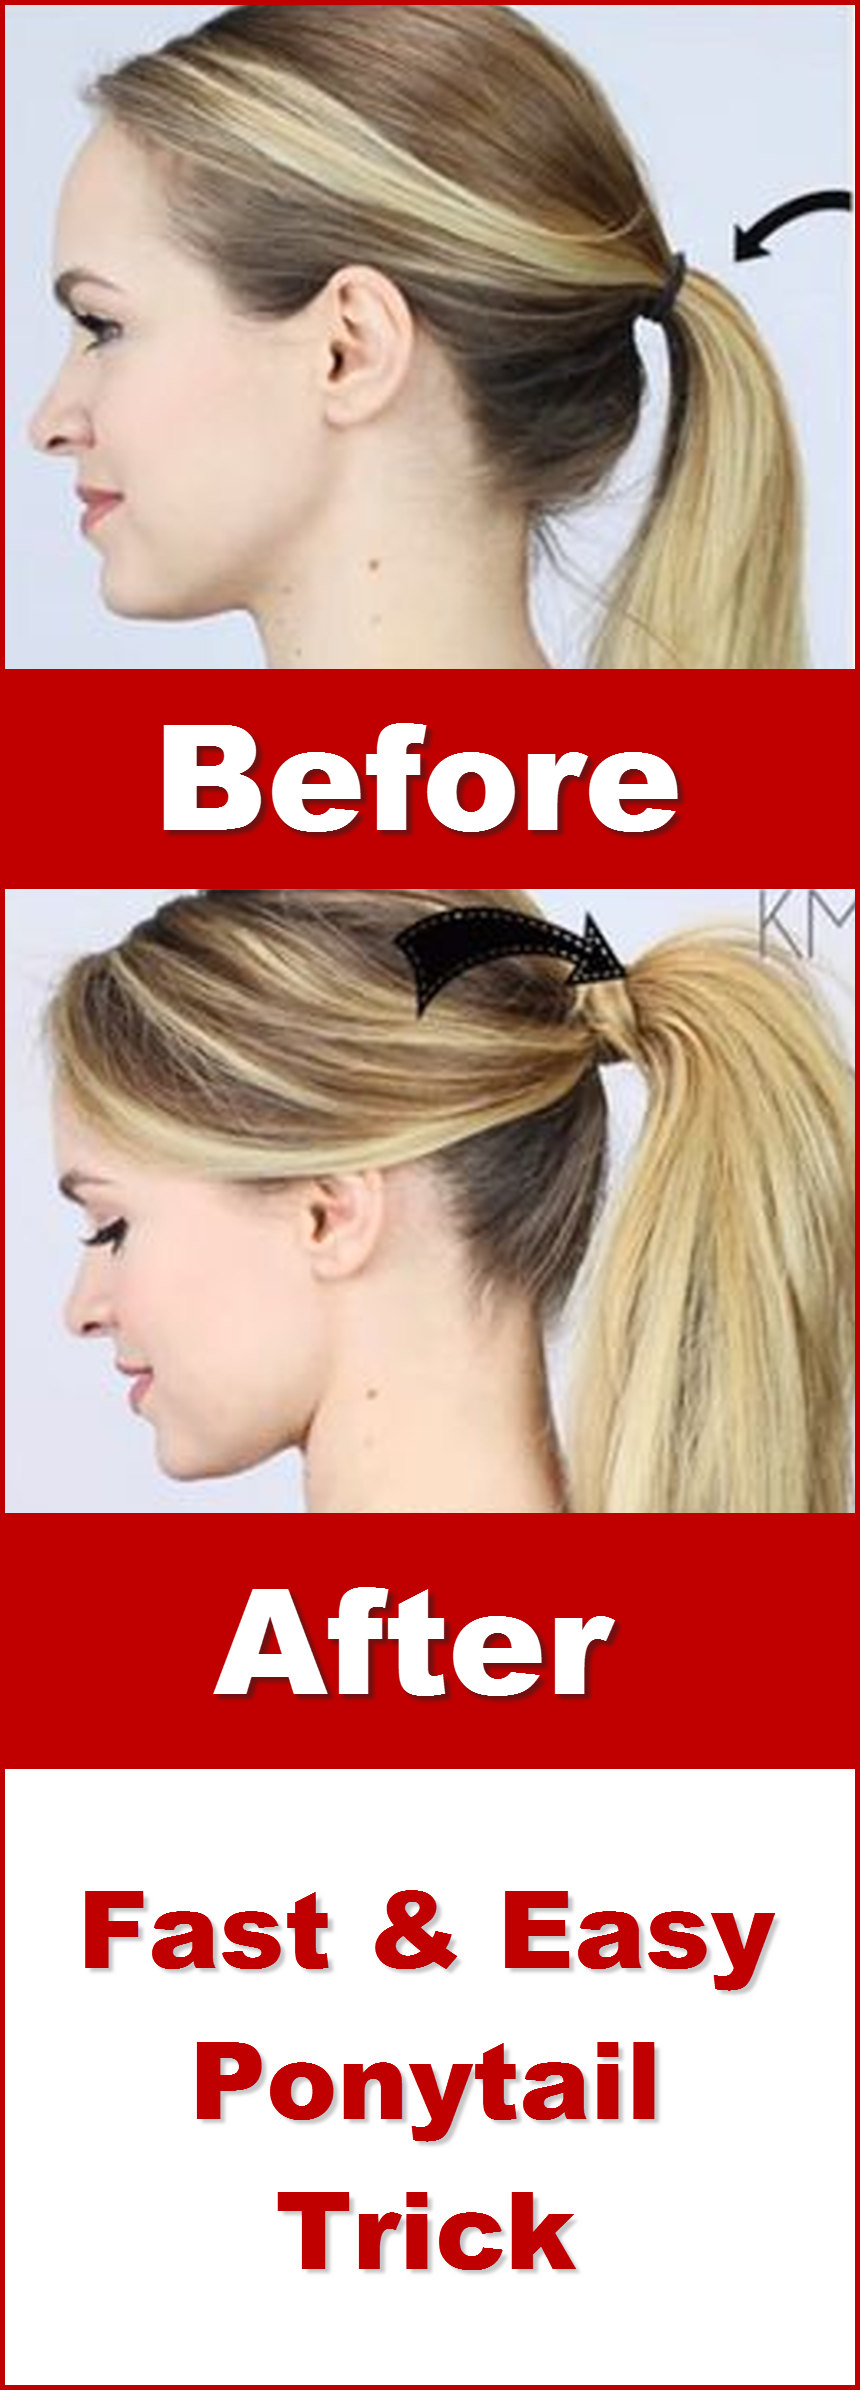 TIP A Better and Sassier Ponytail in Less Than 5 Minutes